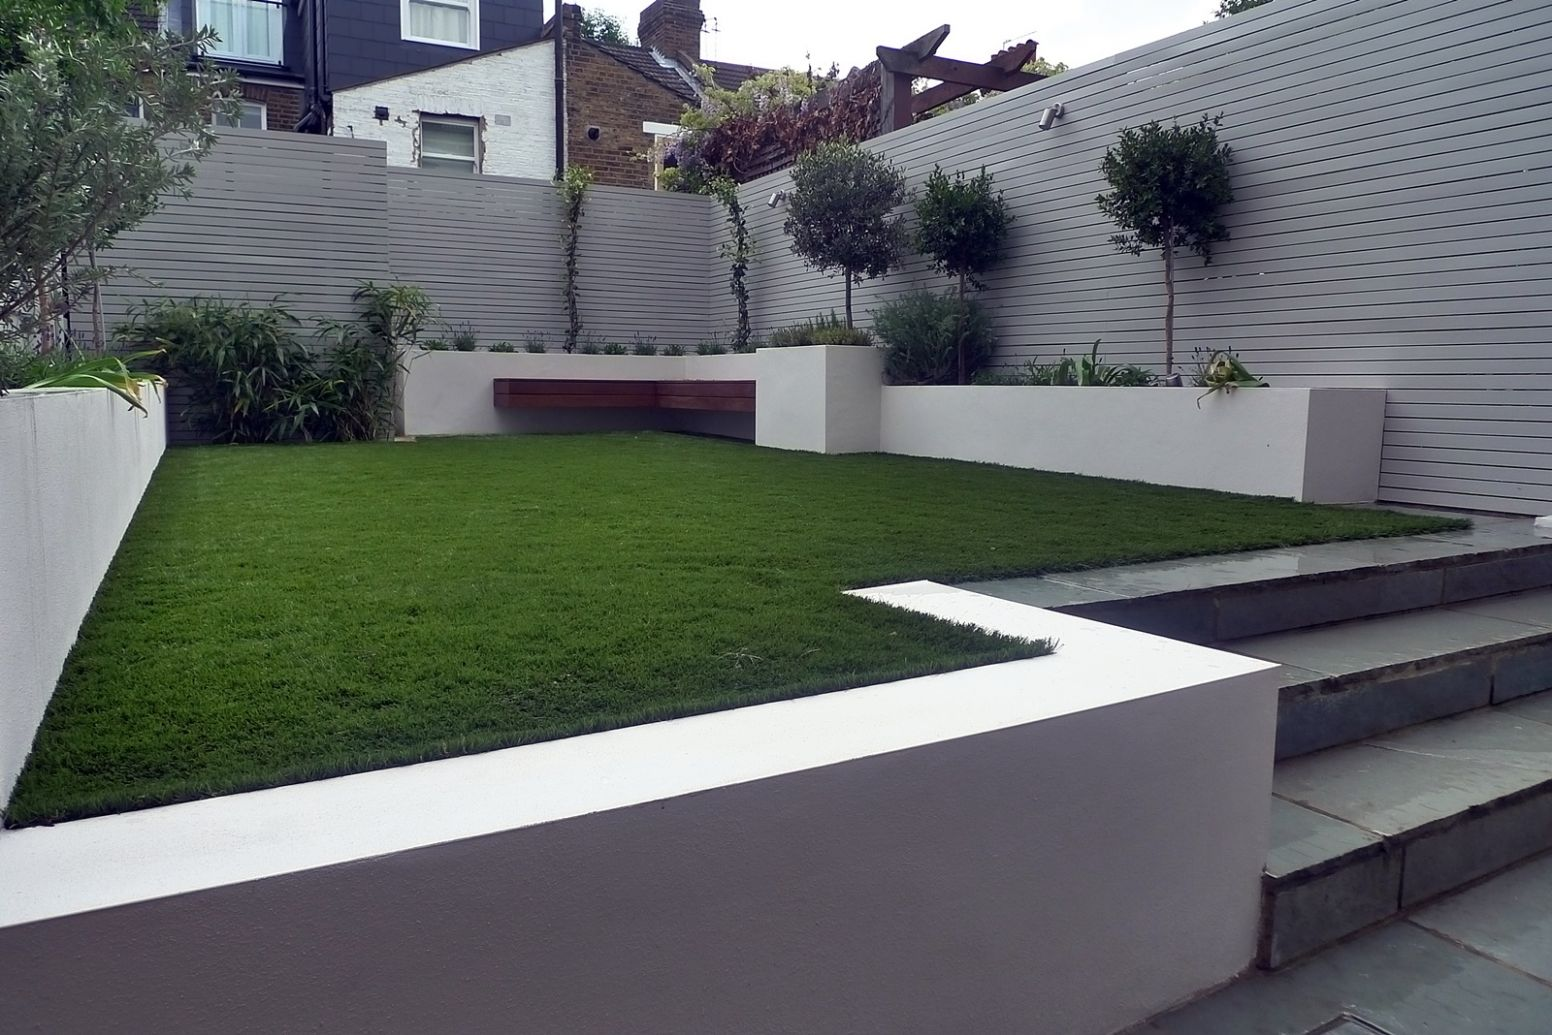 Artificial grass easi grass grey painted fences modern garden ...